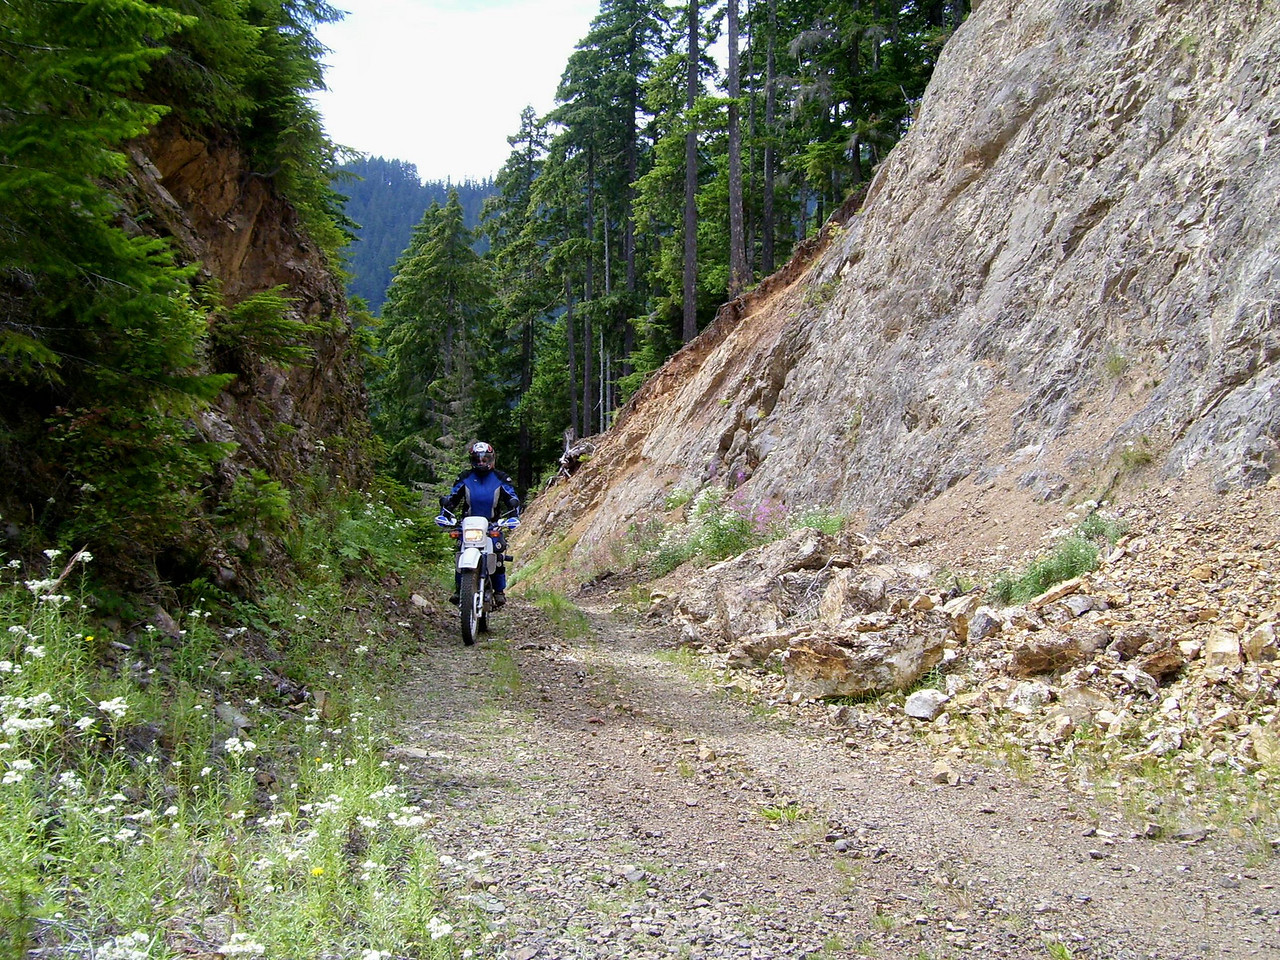 Sylvia riding up the unmaintained FS road we saw from across the valley.